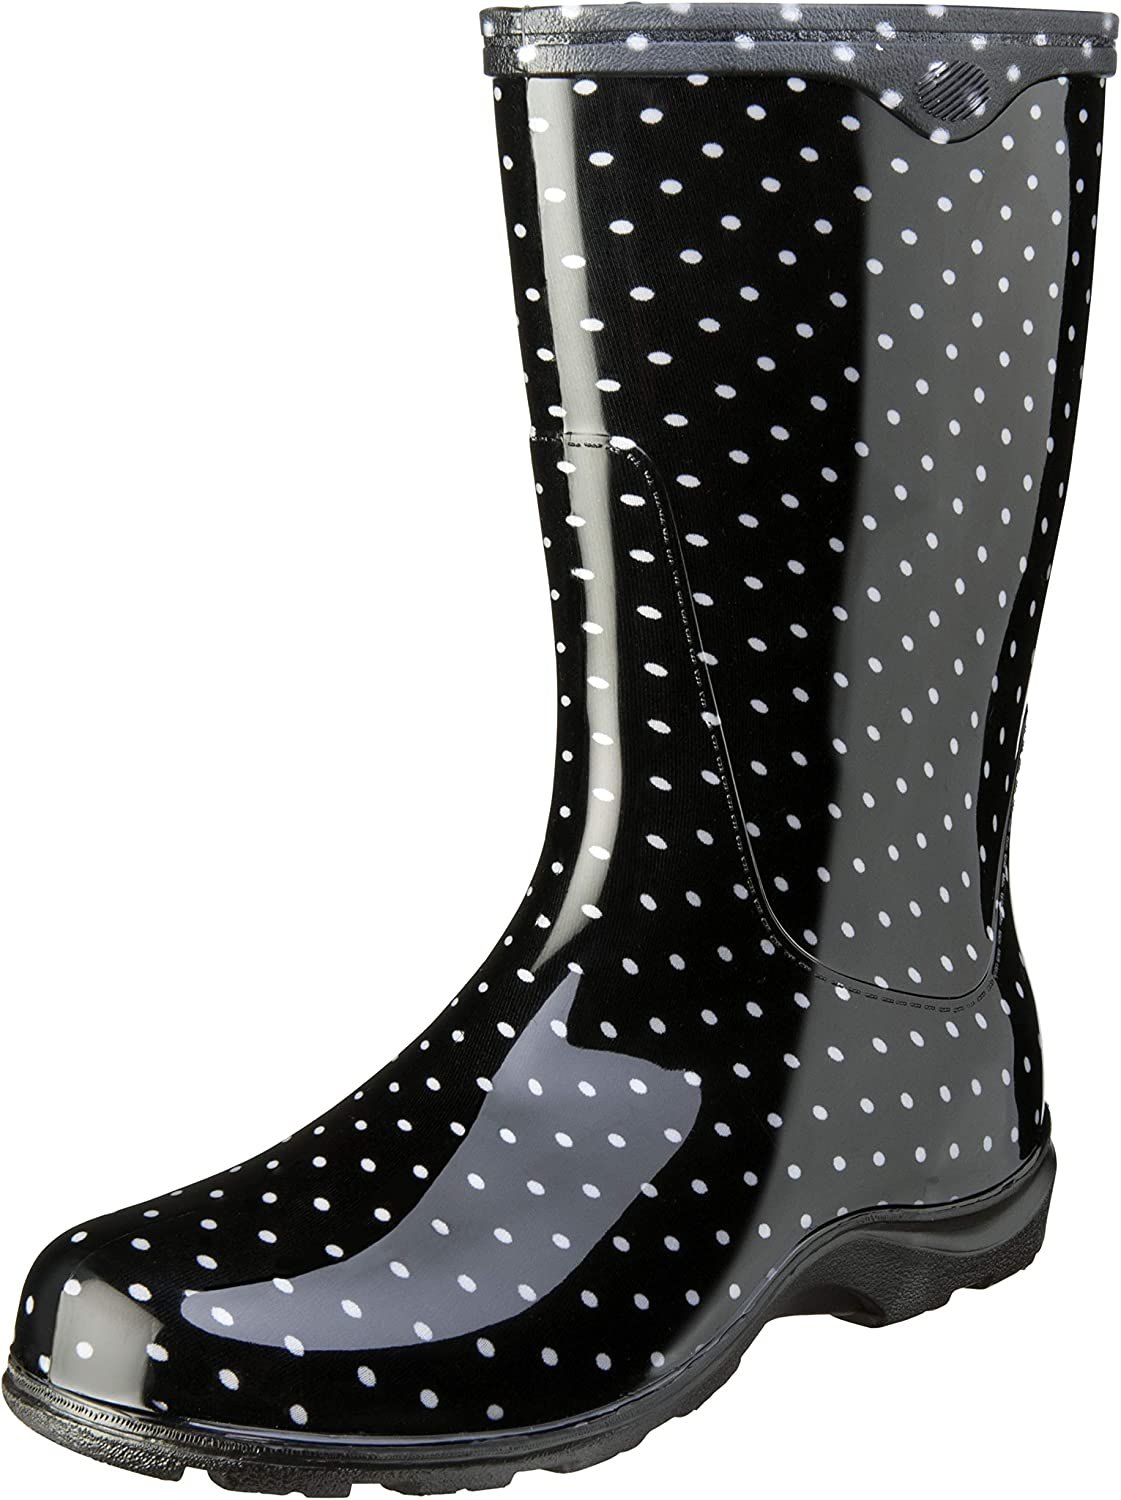 Sloggers Women's Waterproof Rain and Garden Boot with Comfort Insole, Black/White Polka Dot, Size 7, Style 5013BP07